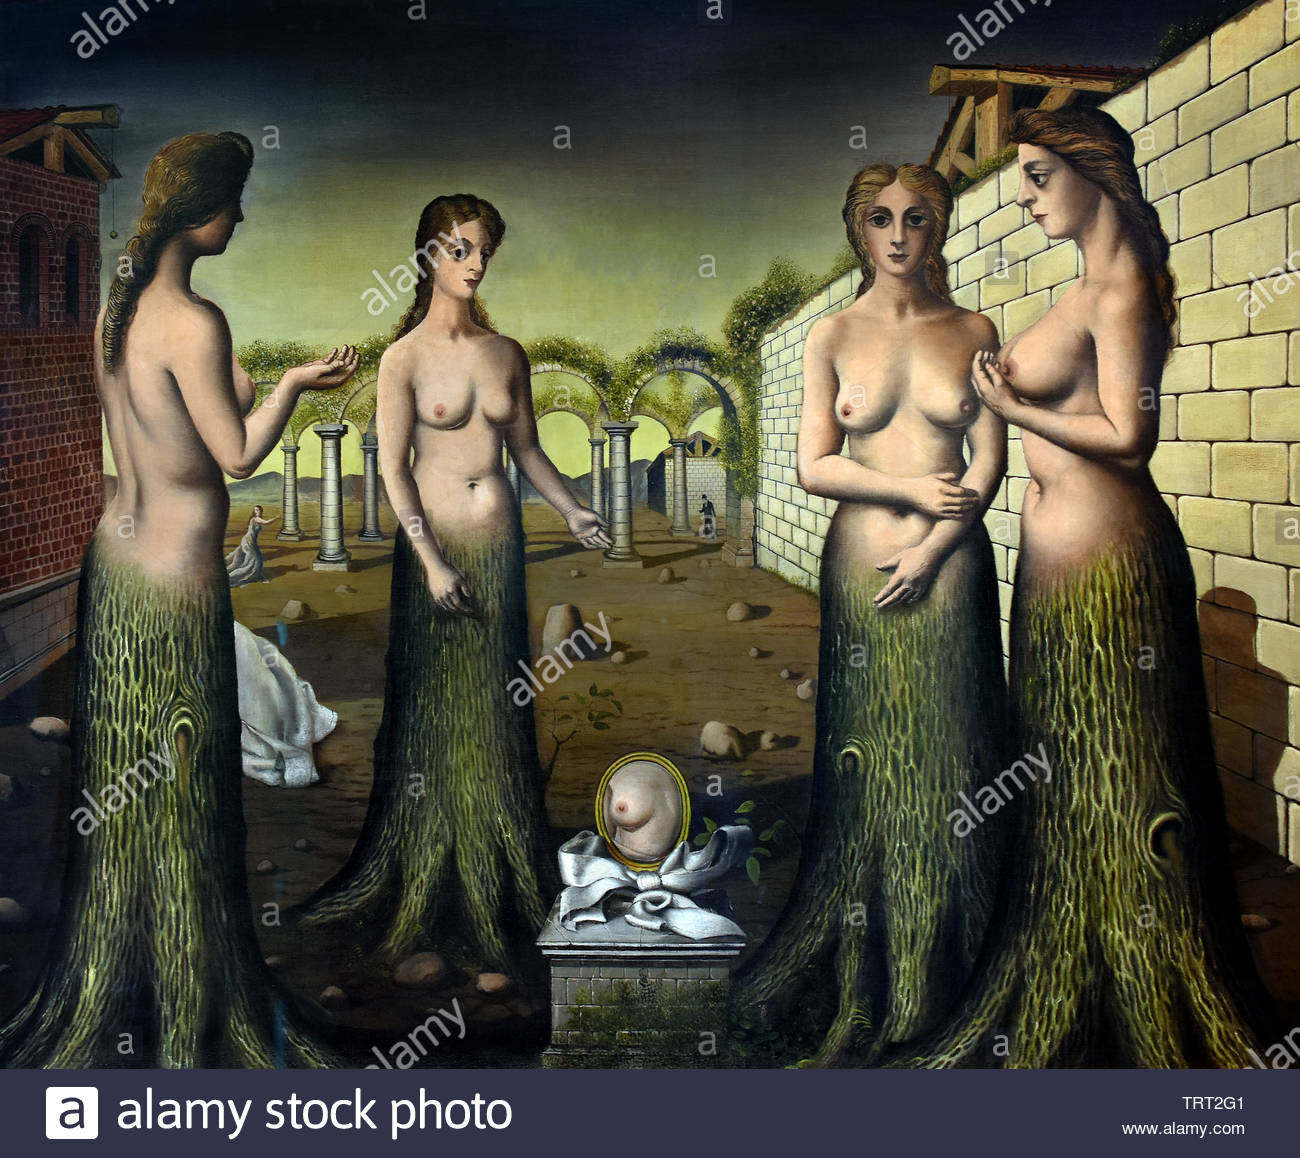 The Brake of the day1937  by Paul Delvaux born in 1897 Belgian Belgium, ( dream-like scenes of women, classical architecture, trains, skeletons, in combination, Surrealist movement.) - Stock Image